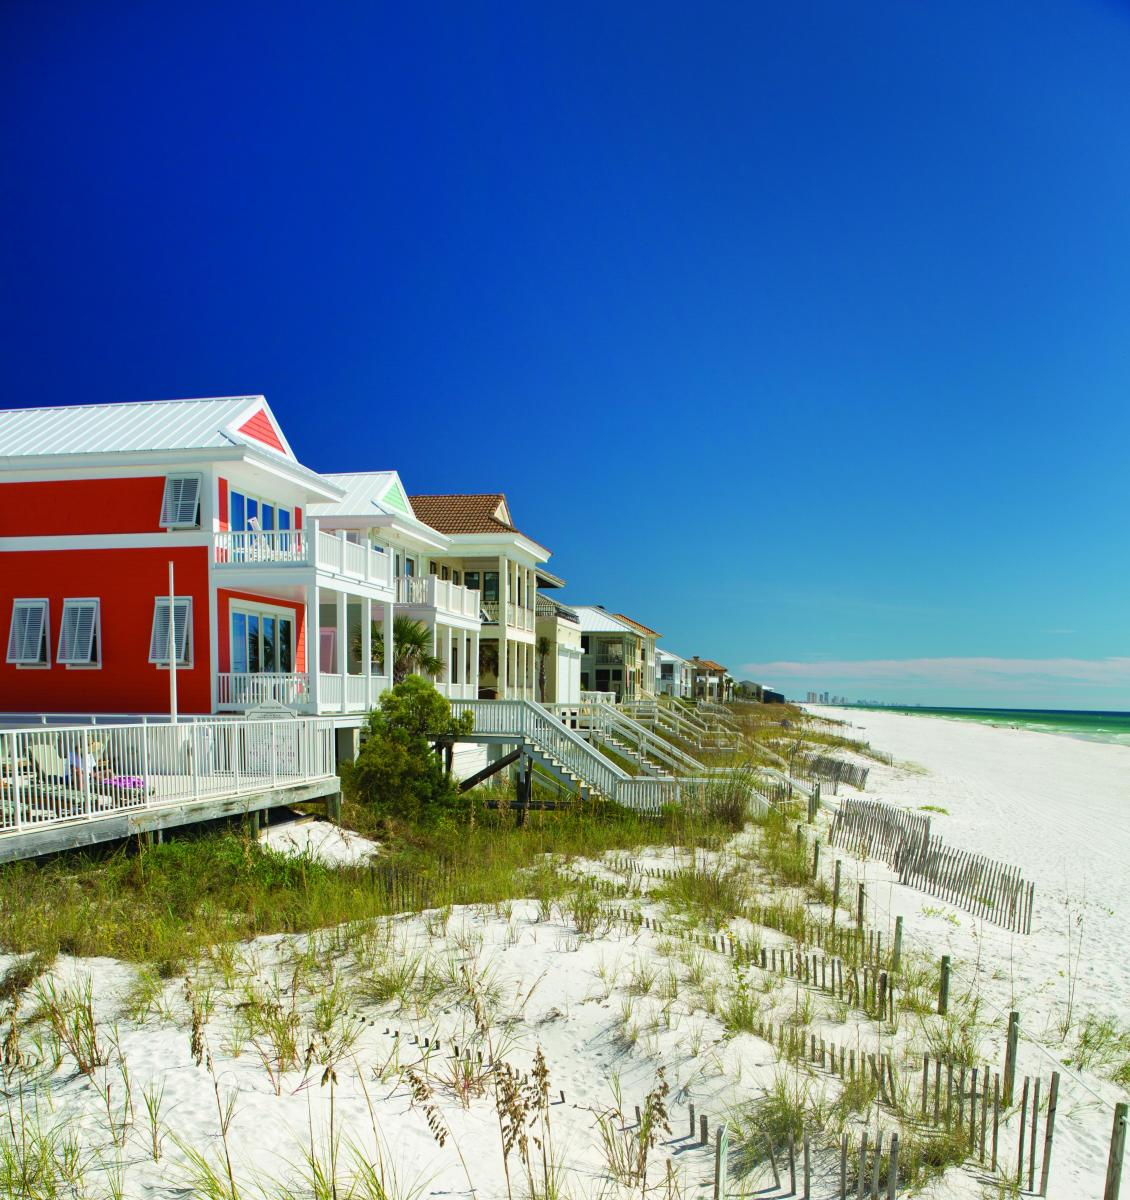 80 Beach Houses  Town Home Rentals in Panama City Beach FL